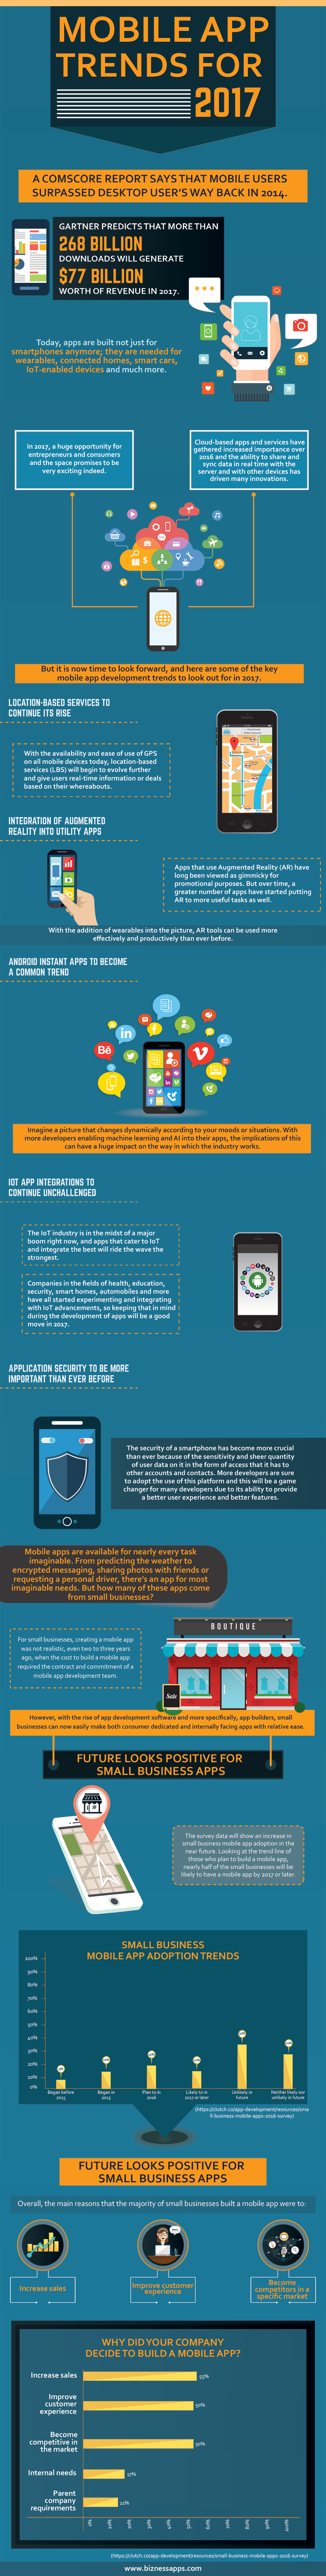 Nearly Half of Small Businesses Expected to Adopt Mobile Apps by 2017 (Infographic)